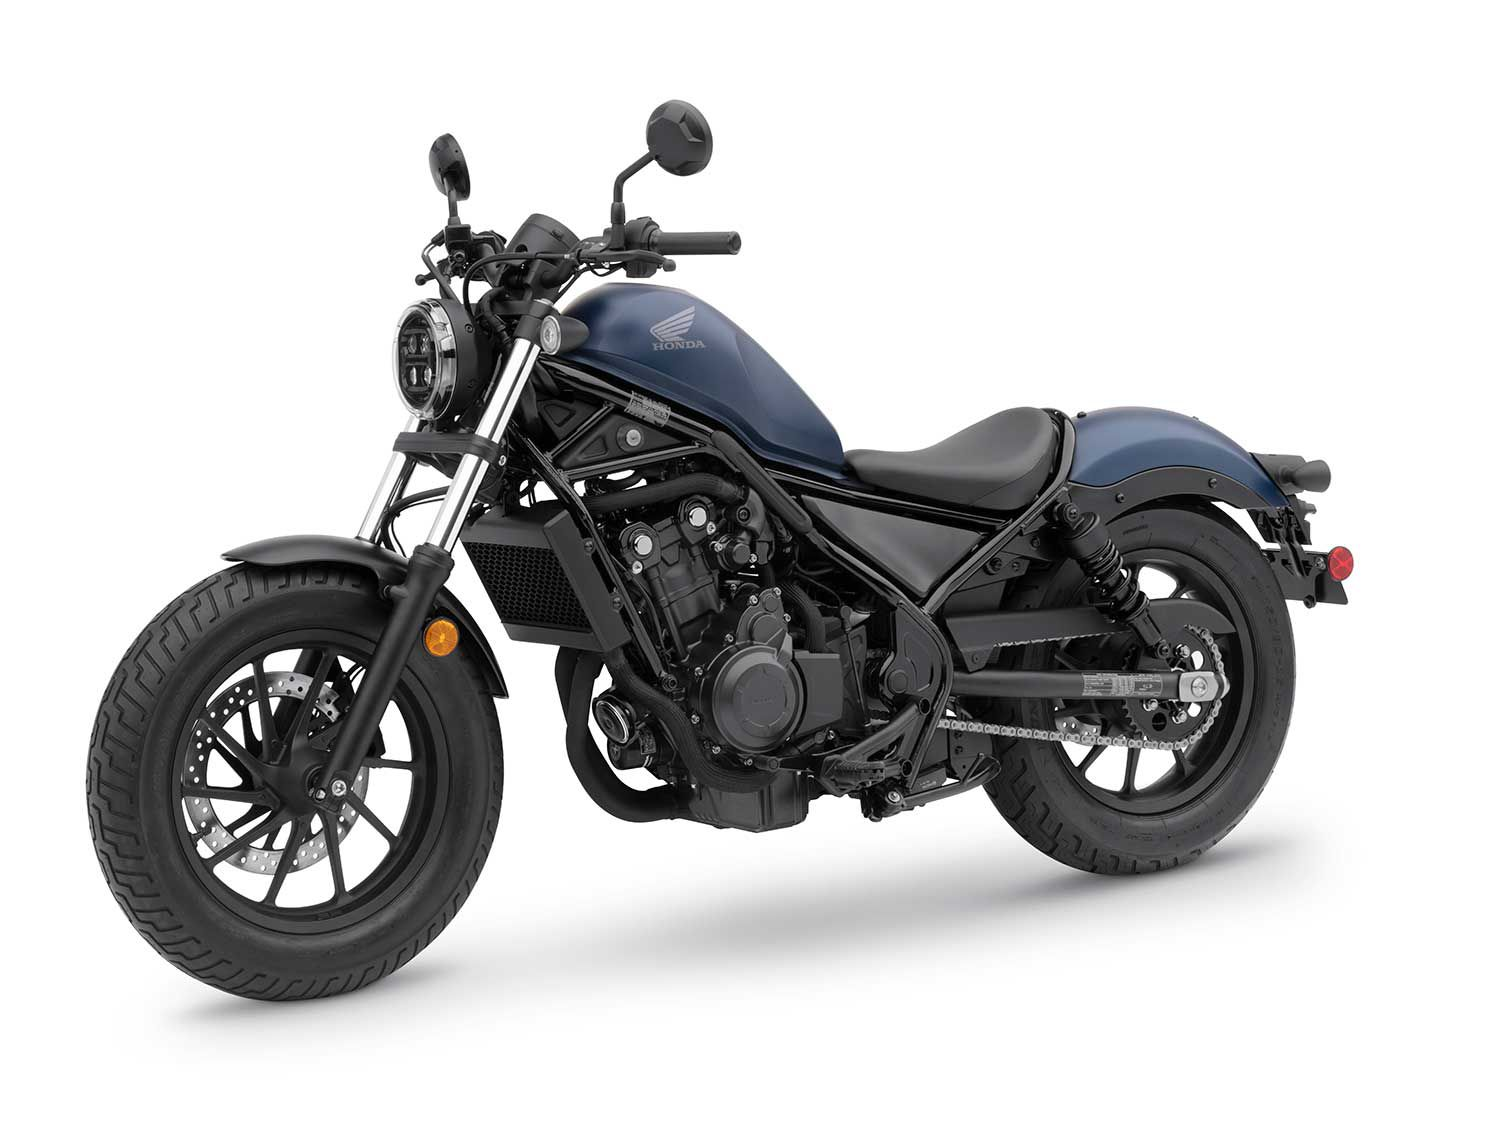 The Rebel 500 will also feature stiffer spring rates in 2020 at the front and rear.